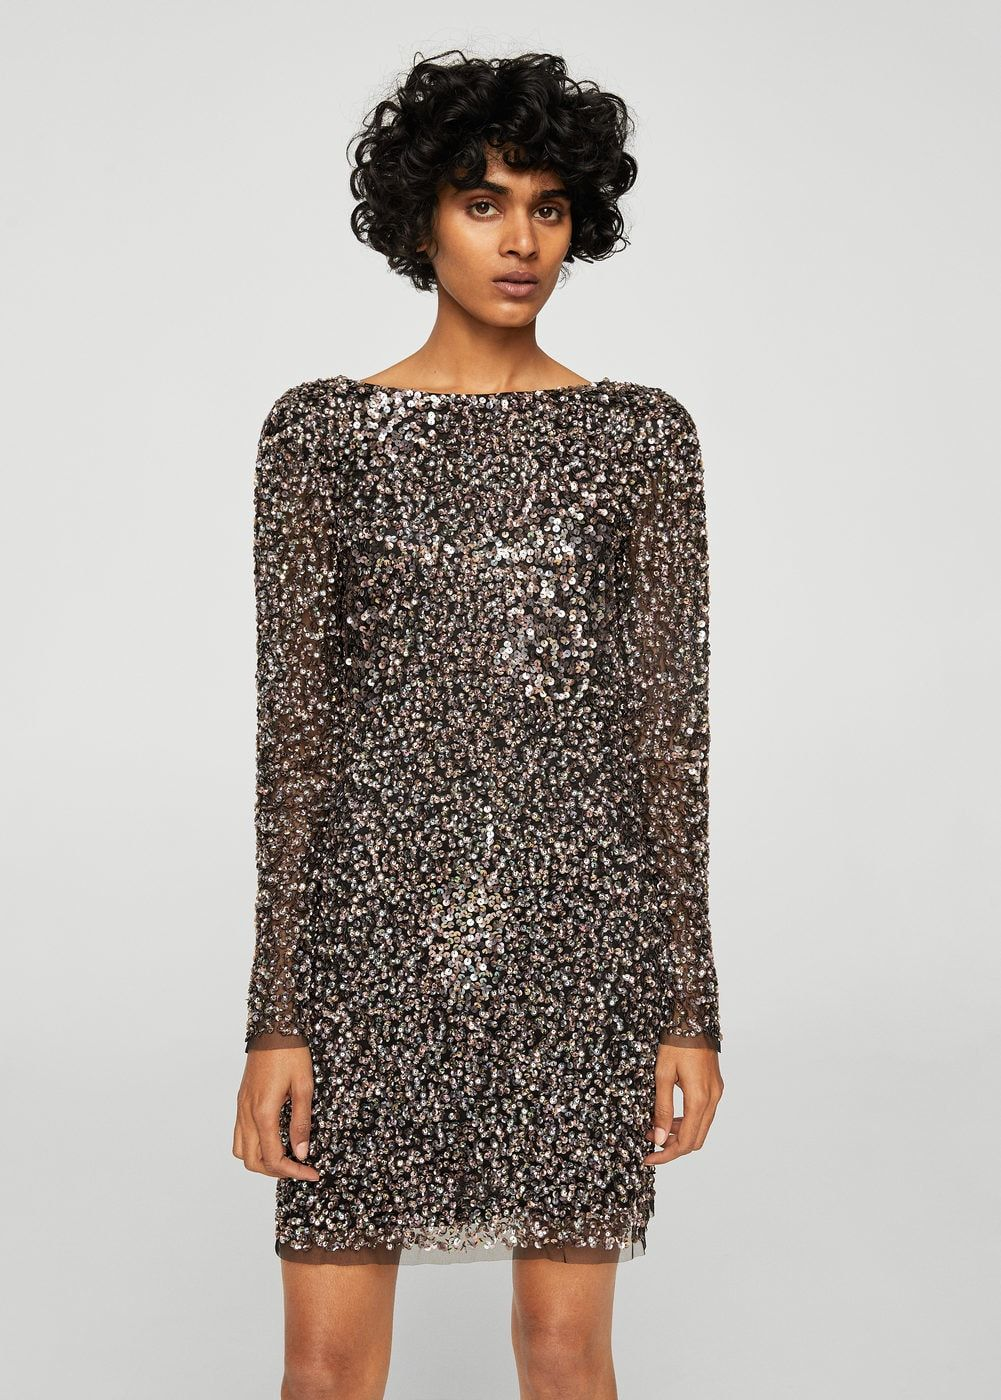 Sequin embroidered dress - Woman   mango   Dresses, Sequins, Fashion bc4da0cddbe9